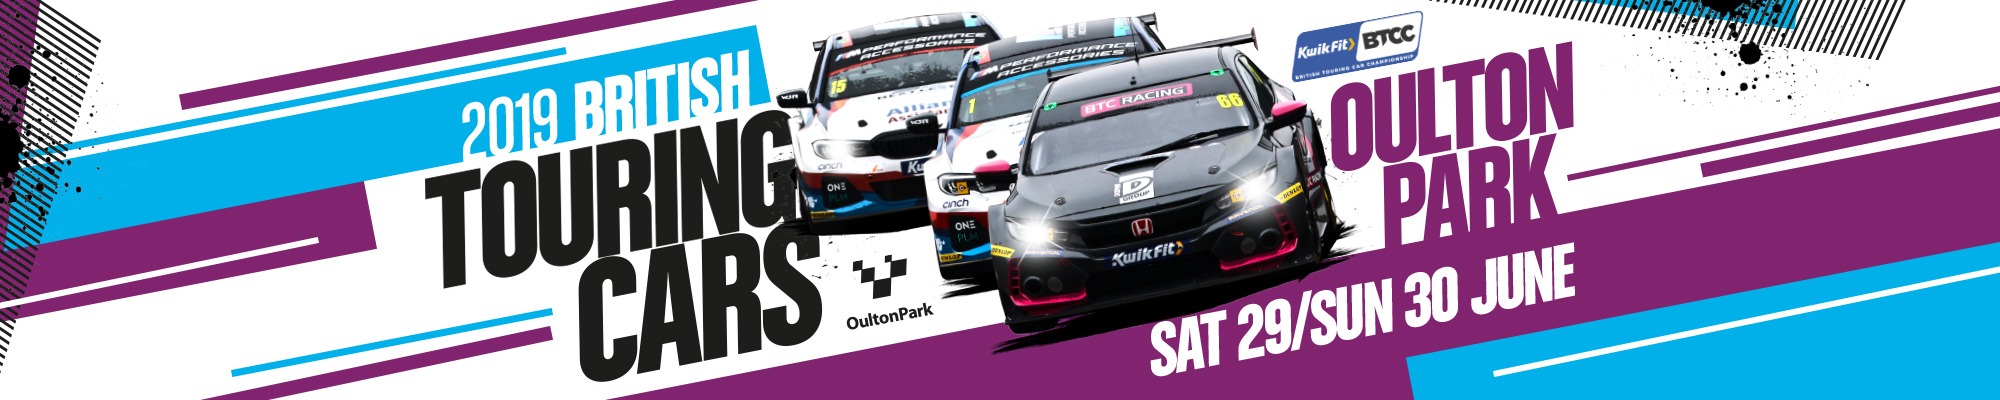 Kwik Fit British Touring Car Championship